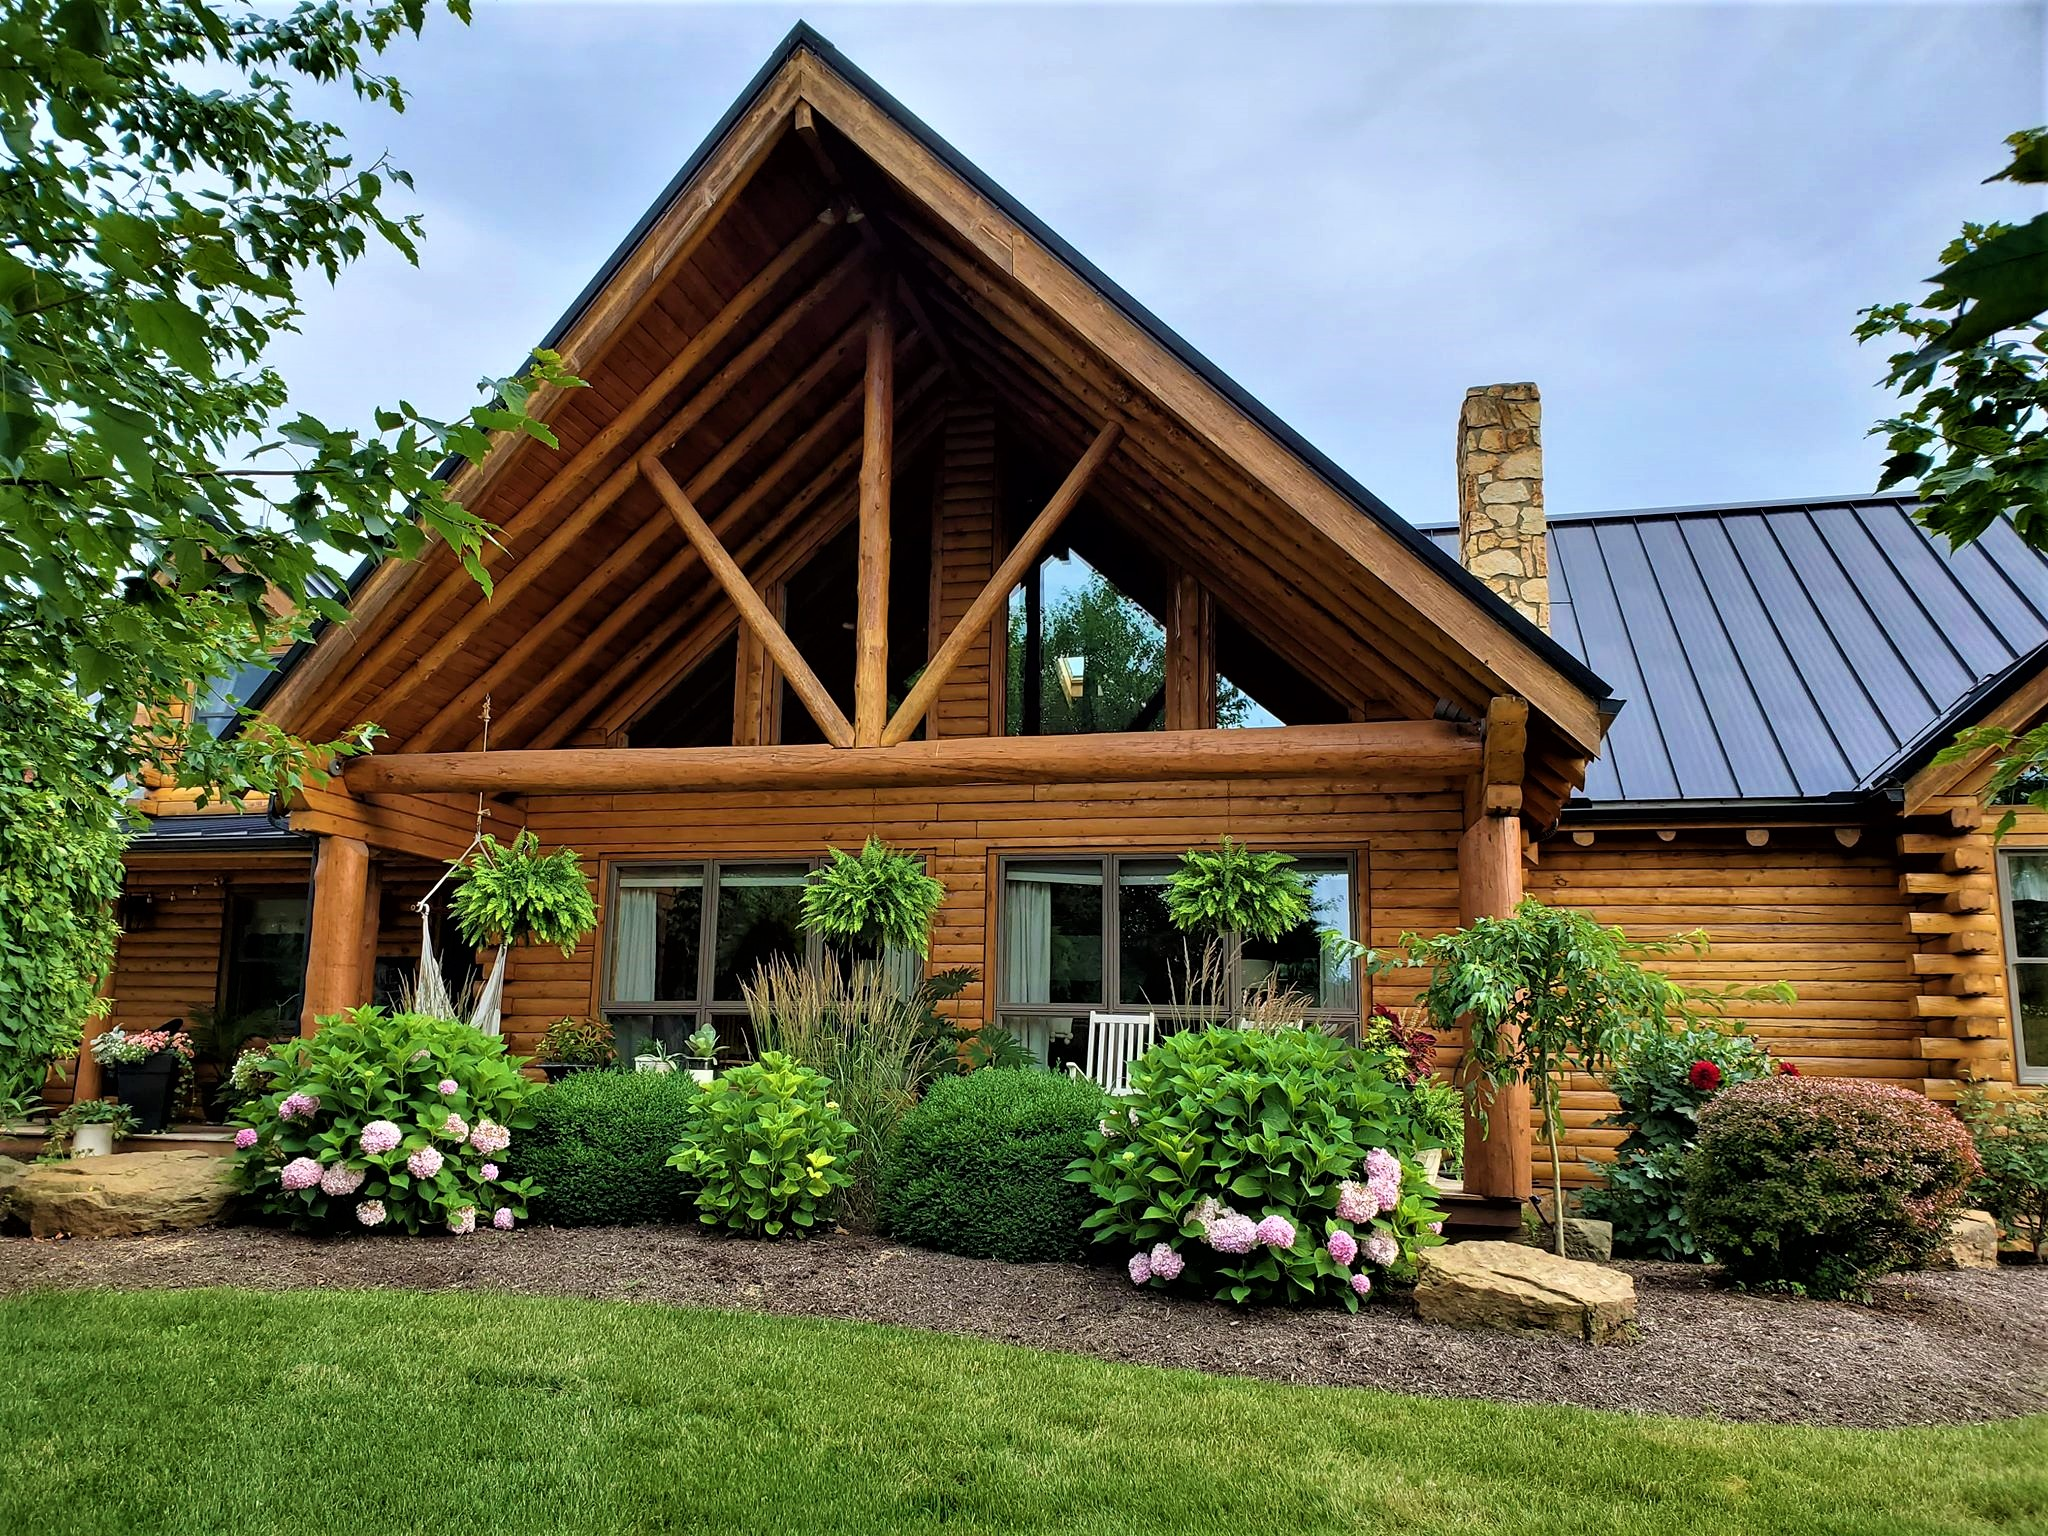 Front Porch Gable of Log Home